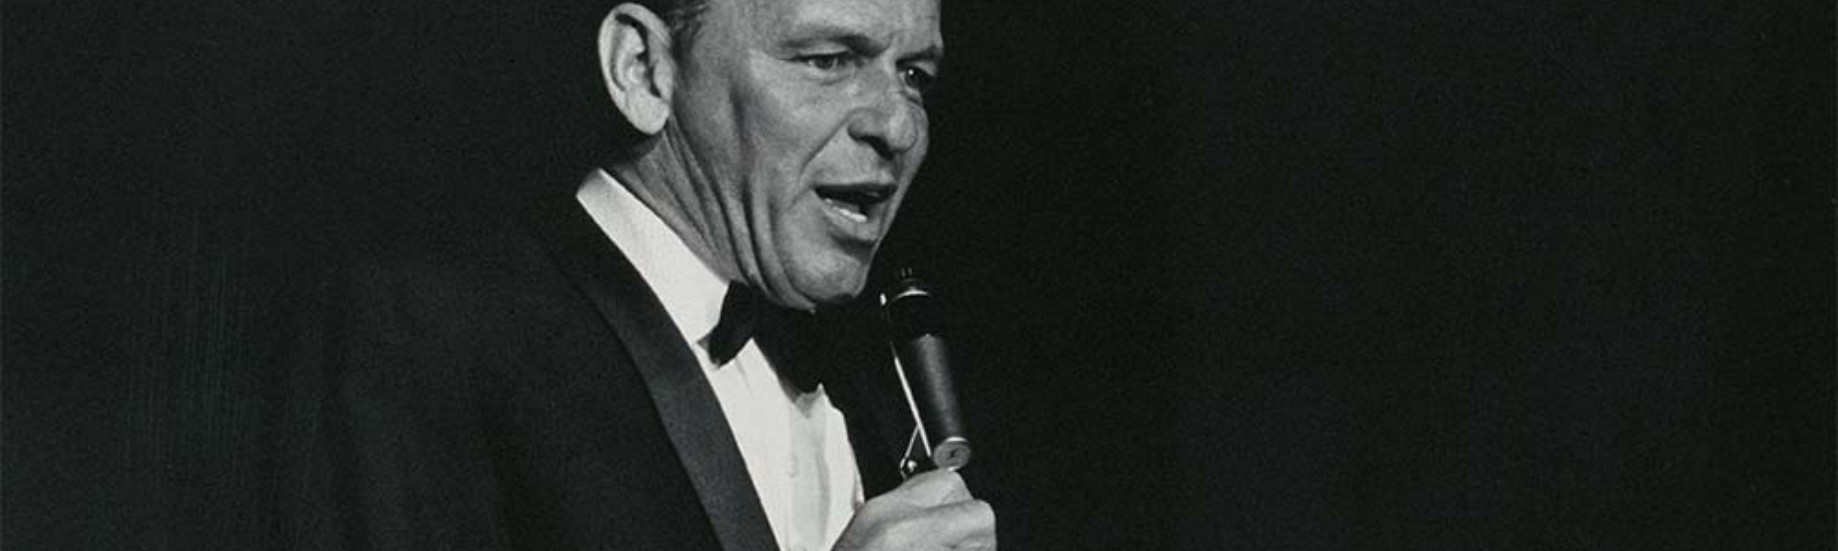 dbab1d2668c9 When Sinatra Took The Throne At London's Royal Festival Hall, 1962